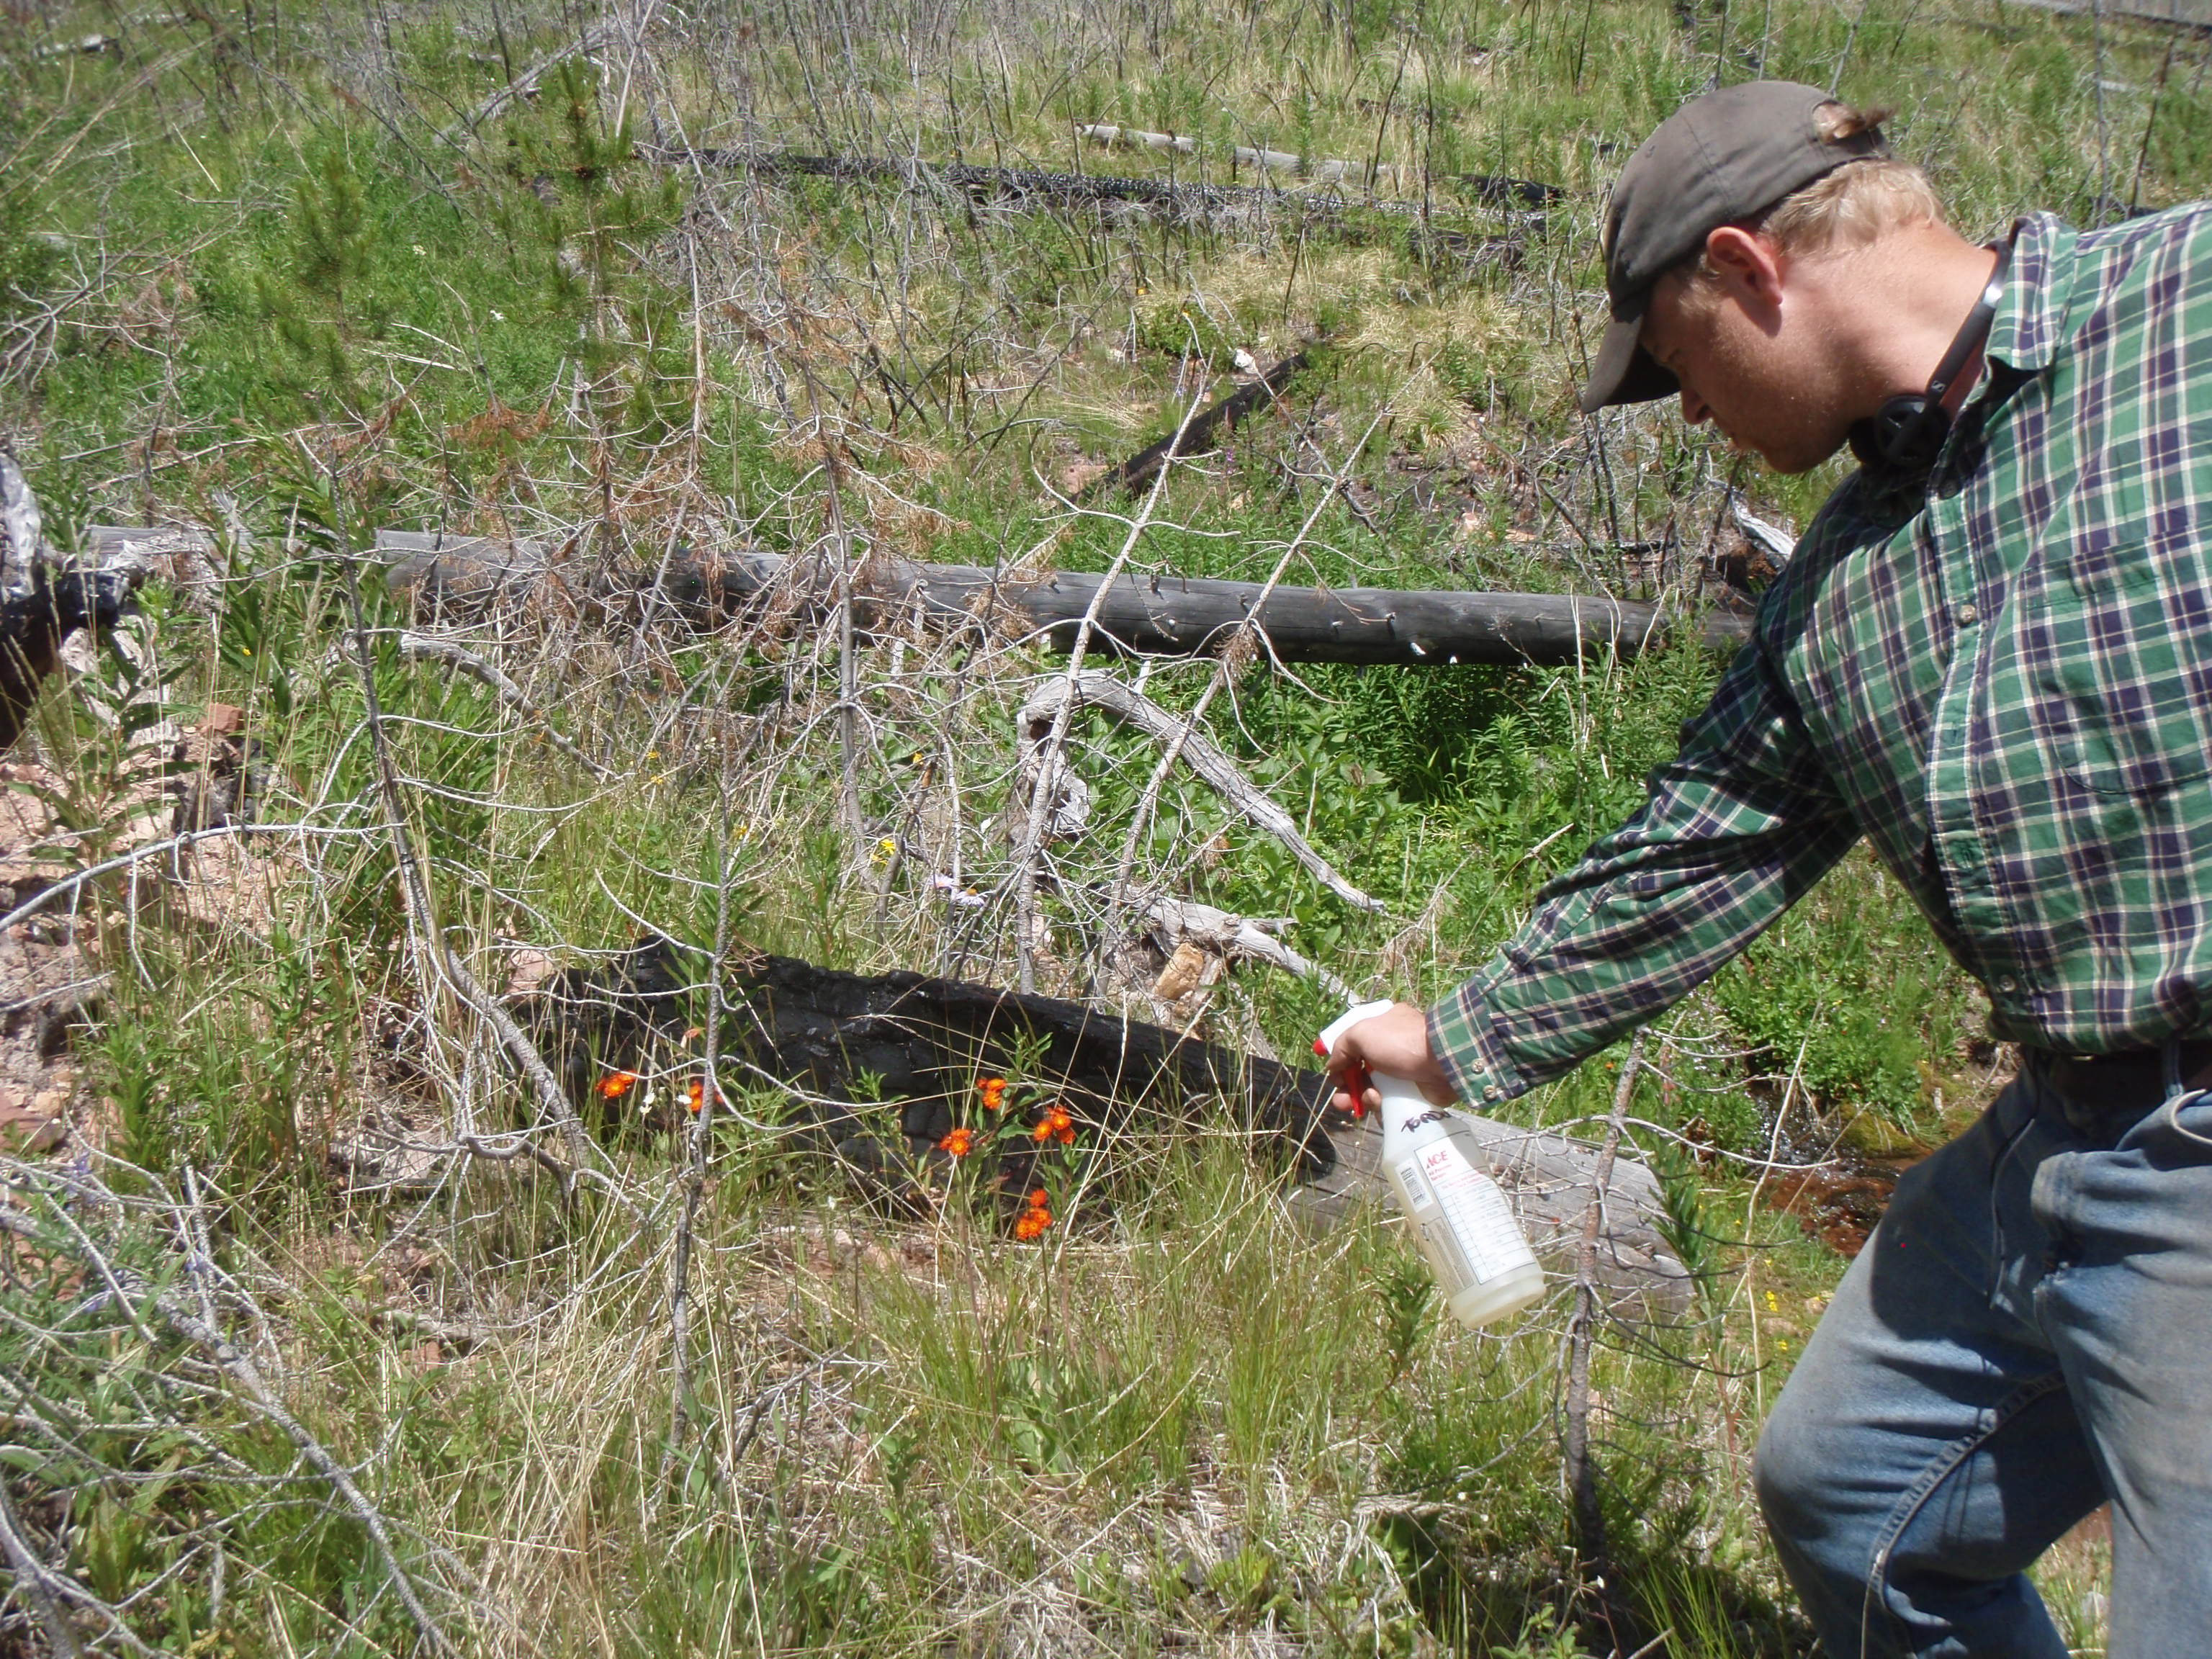 Leif Fredrickson spraying orange hawkweed with herbicide from handsprayer